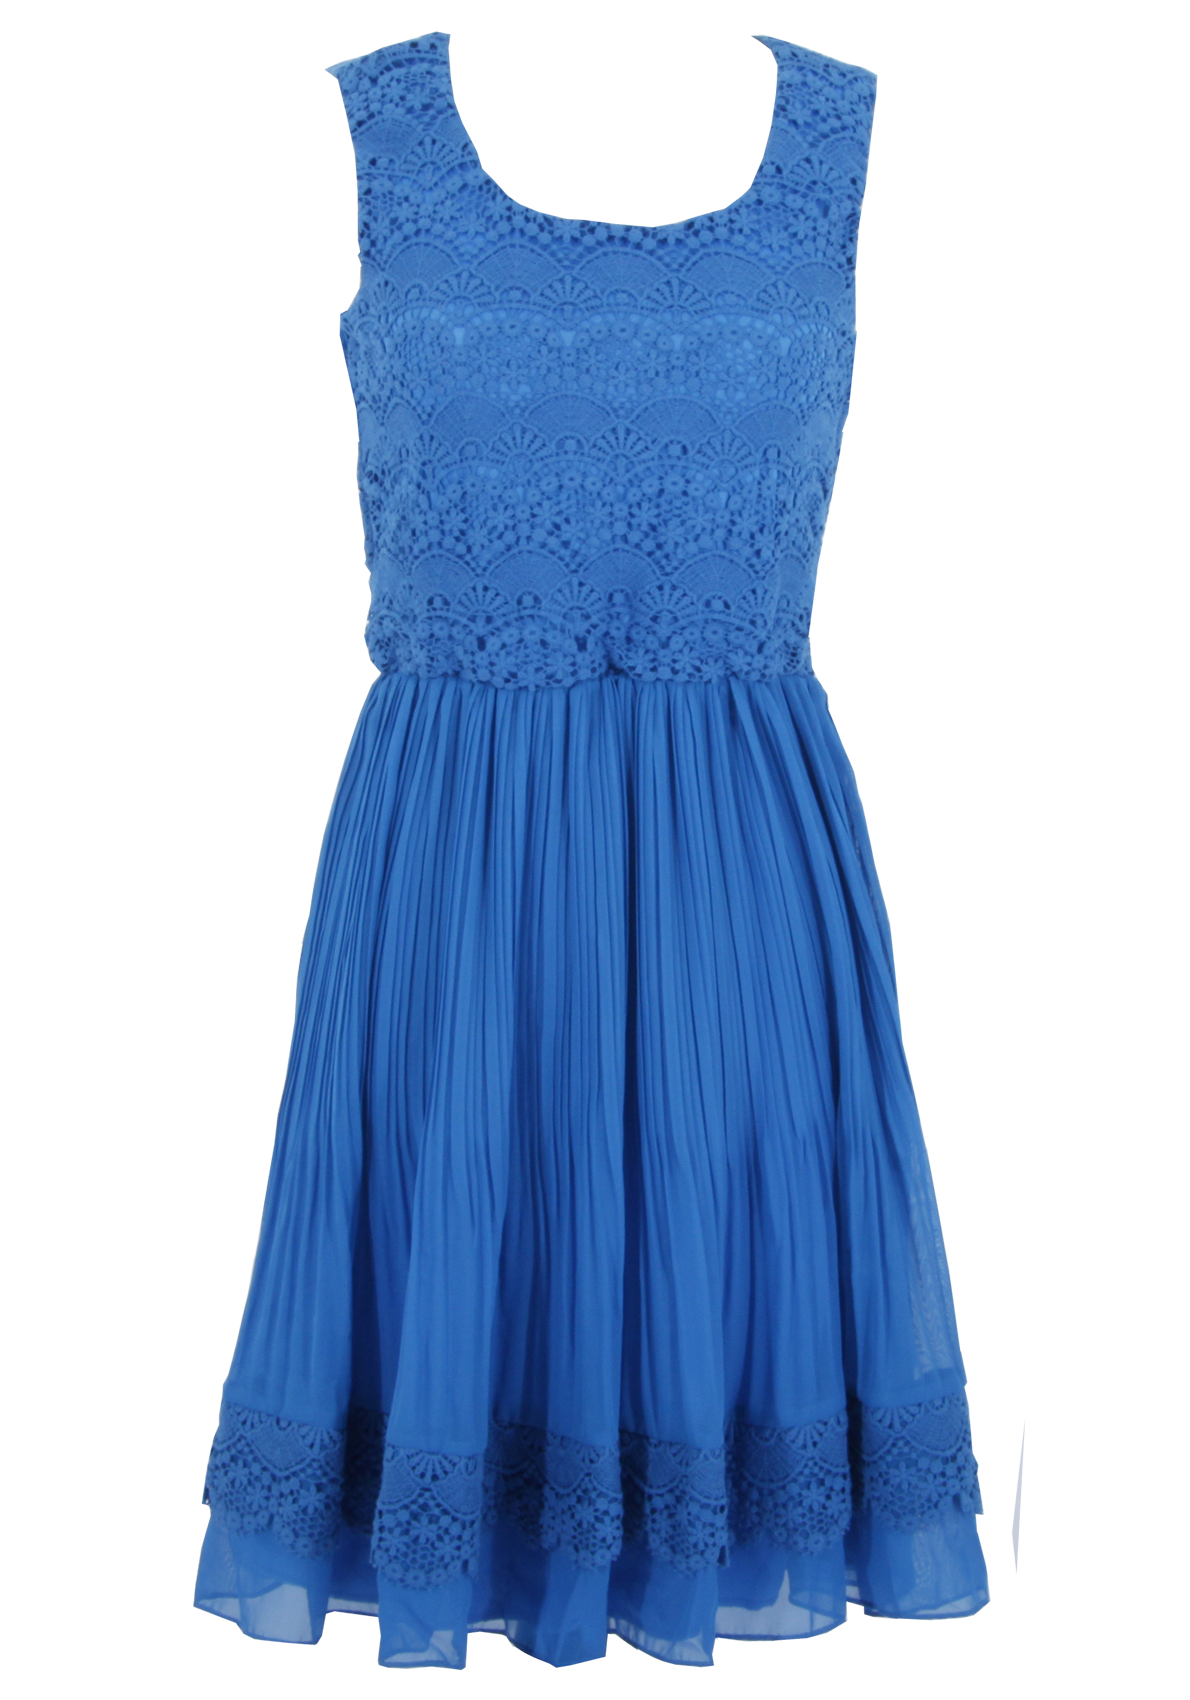 uploads dress dress PNG96 3